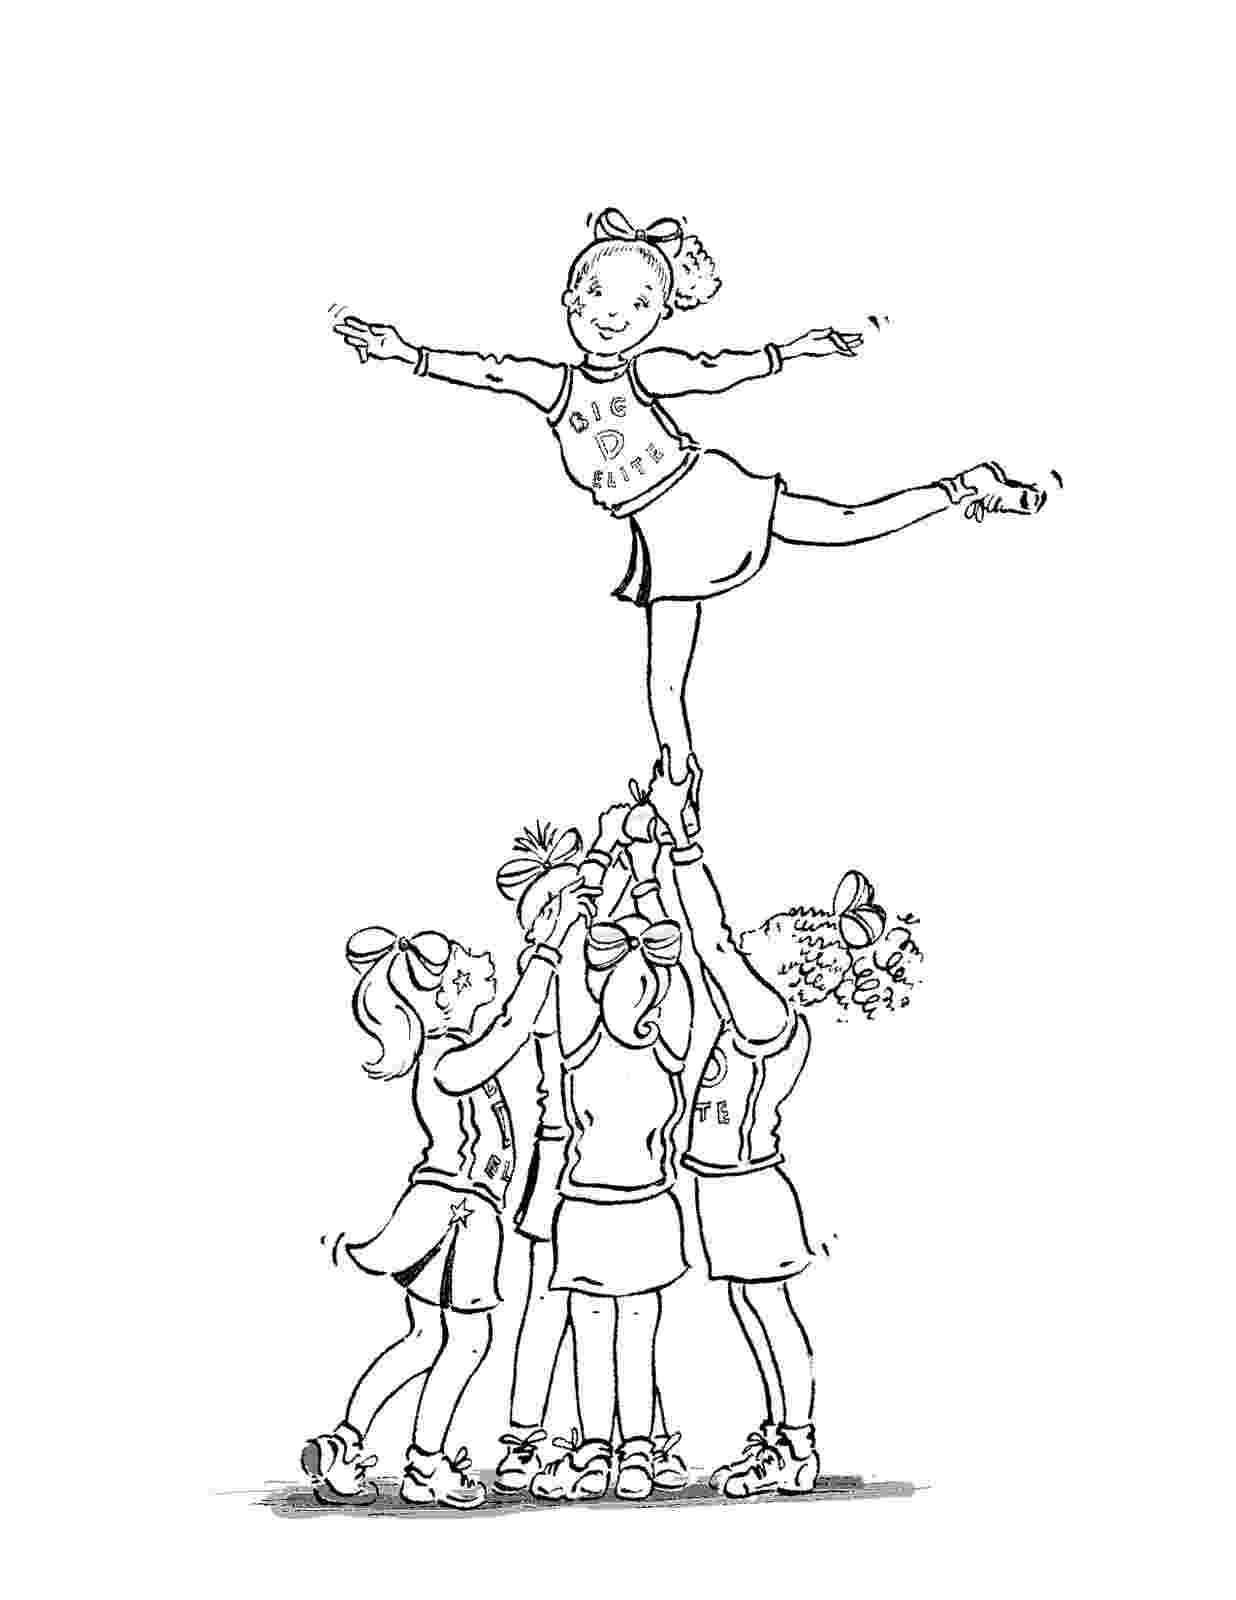 cheer coloring pages printable cheerleading coloring pages for kids cool2bkids coloring cheer pages